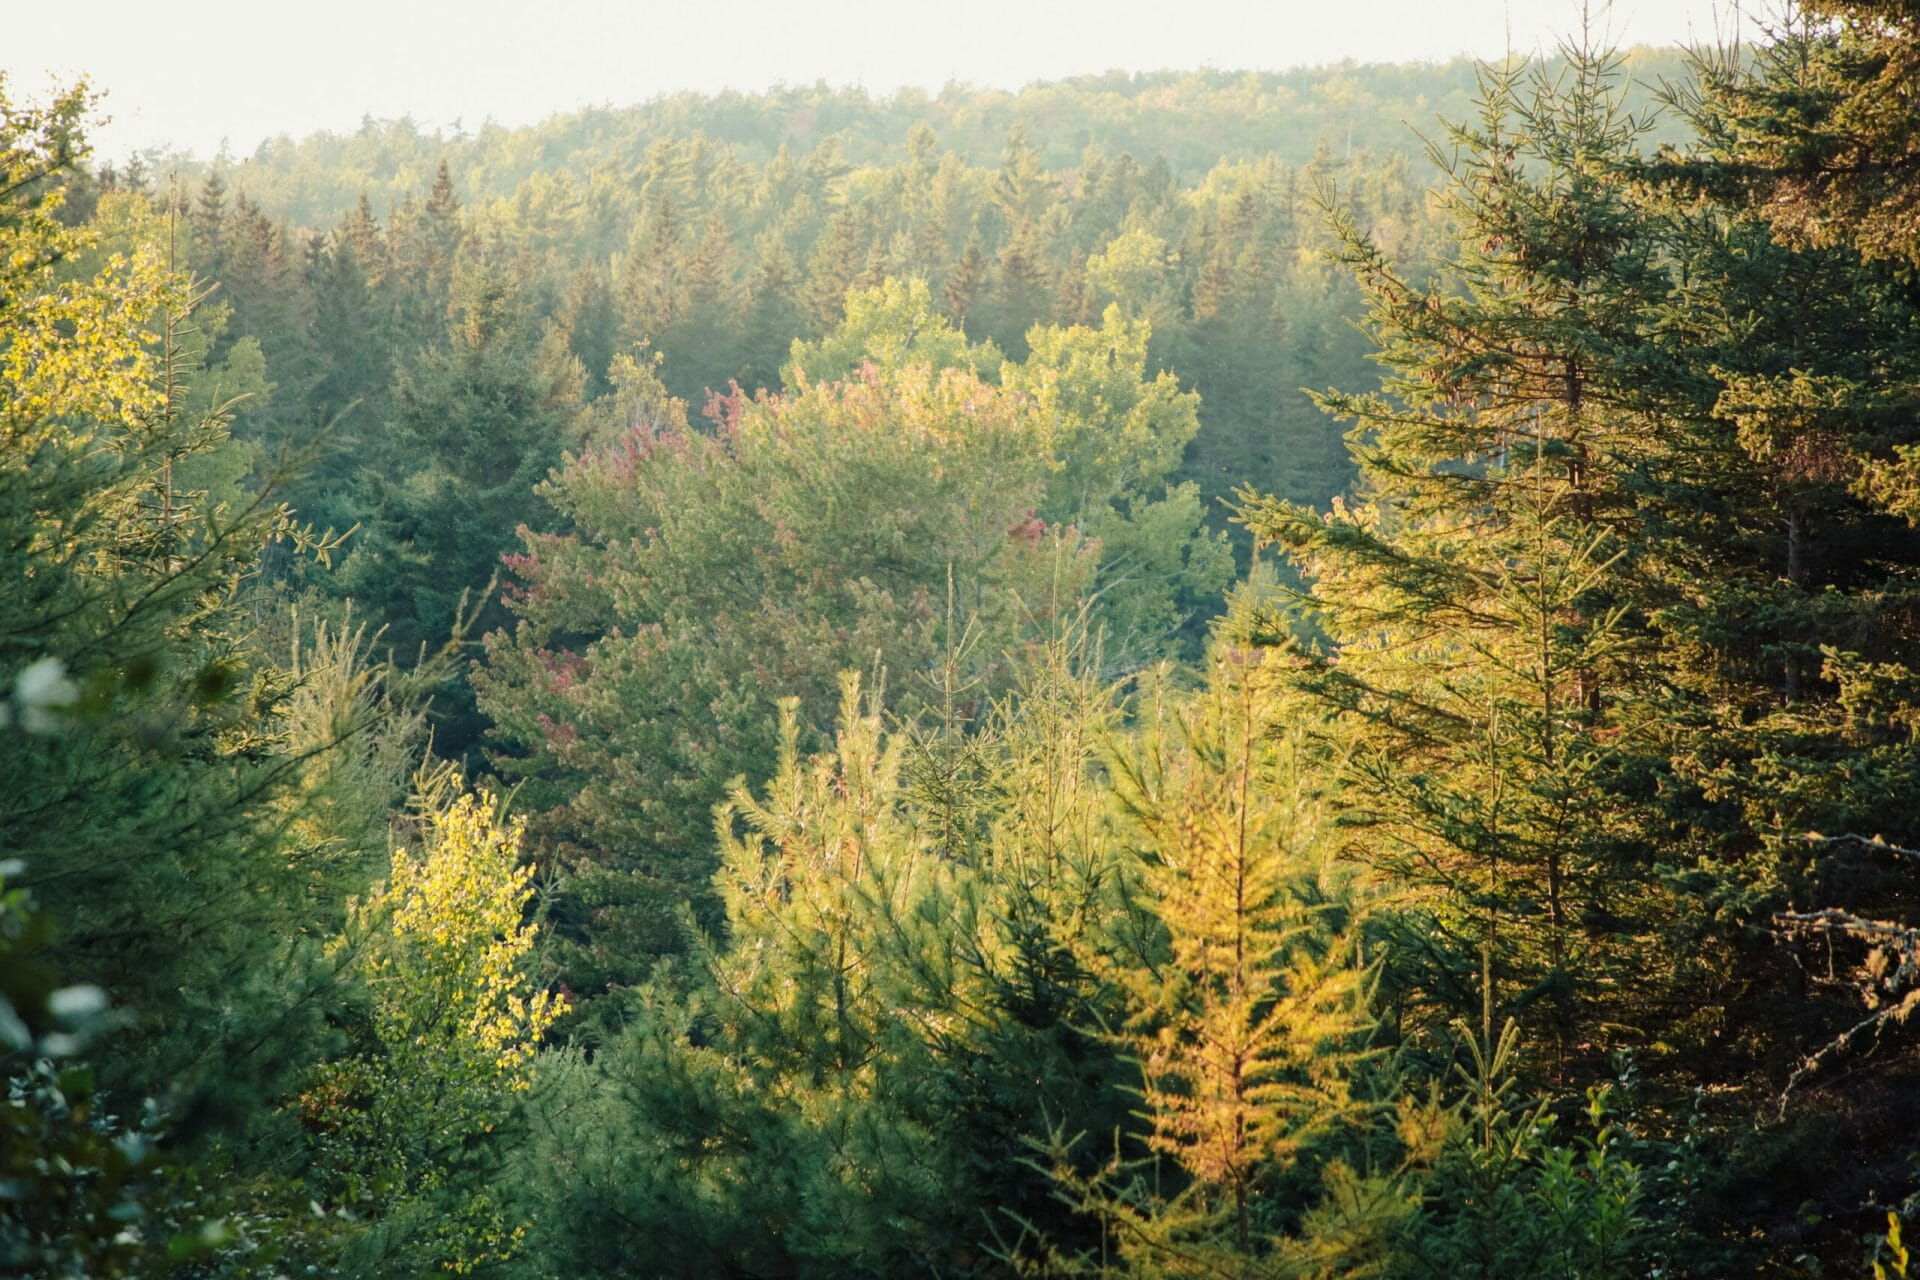 Evergreen trees in various colours of green, yellow, and orange